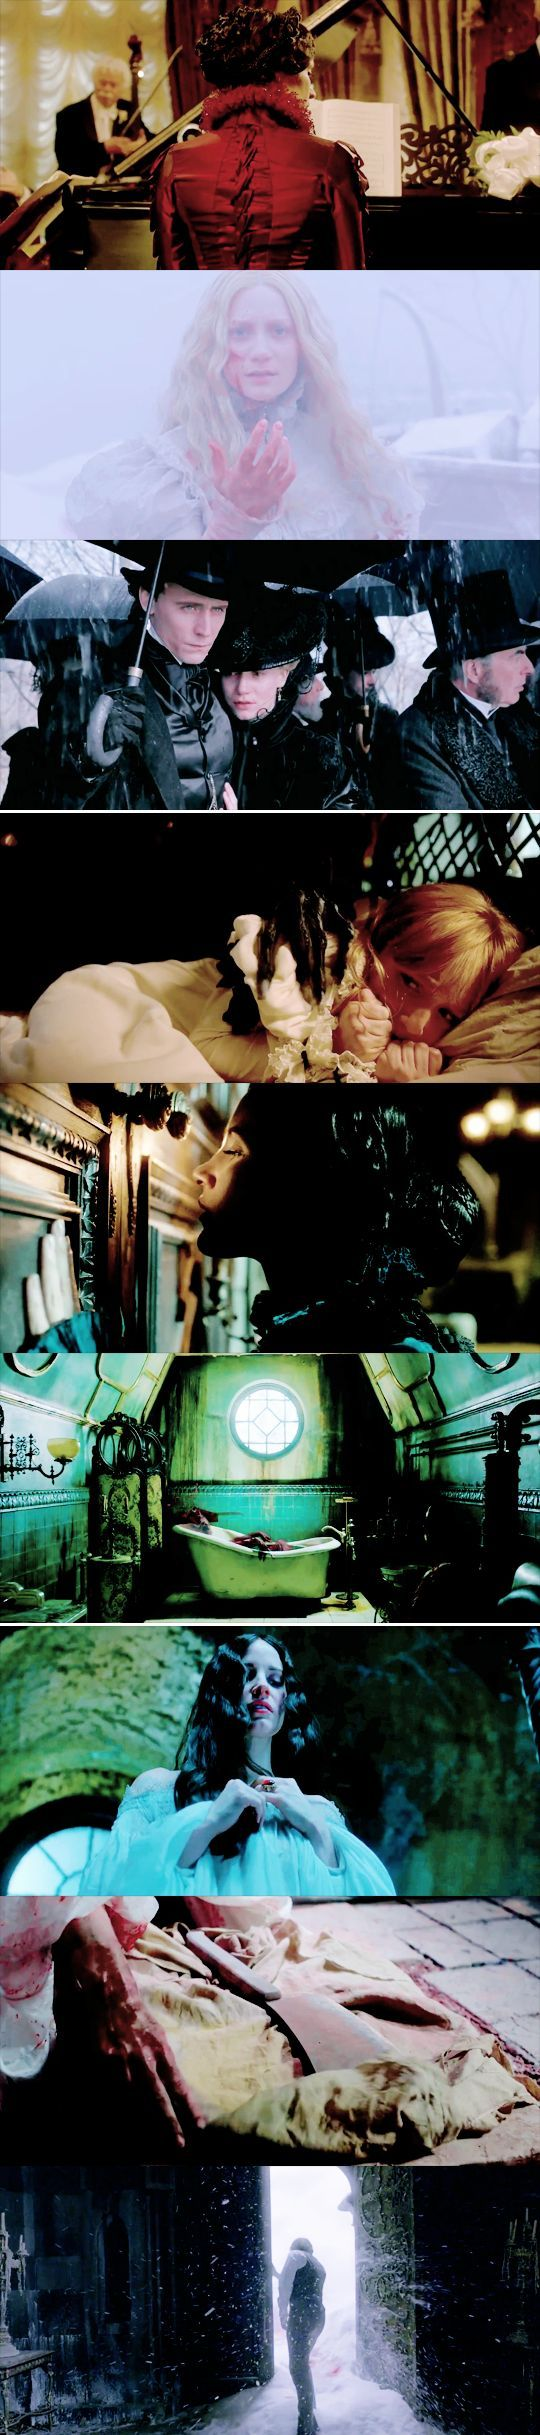 Crimson Peak (2015) Not a great movie, but the costumes and colors and picture was amazing.